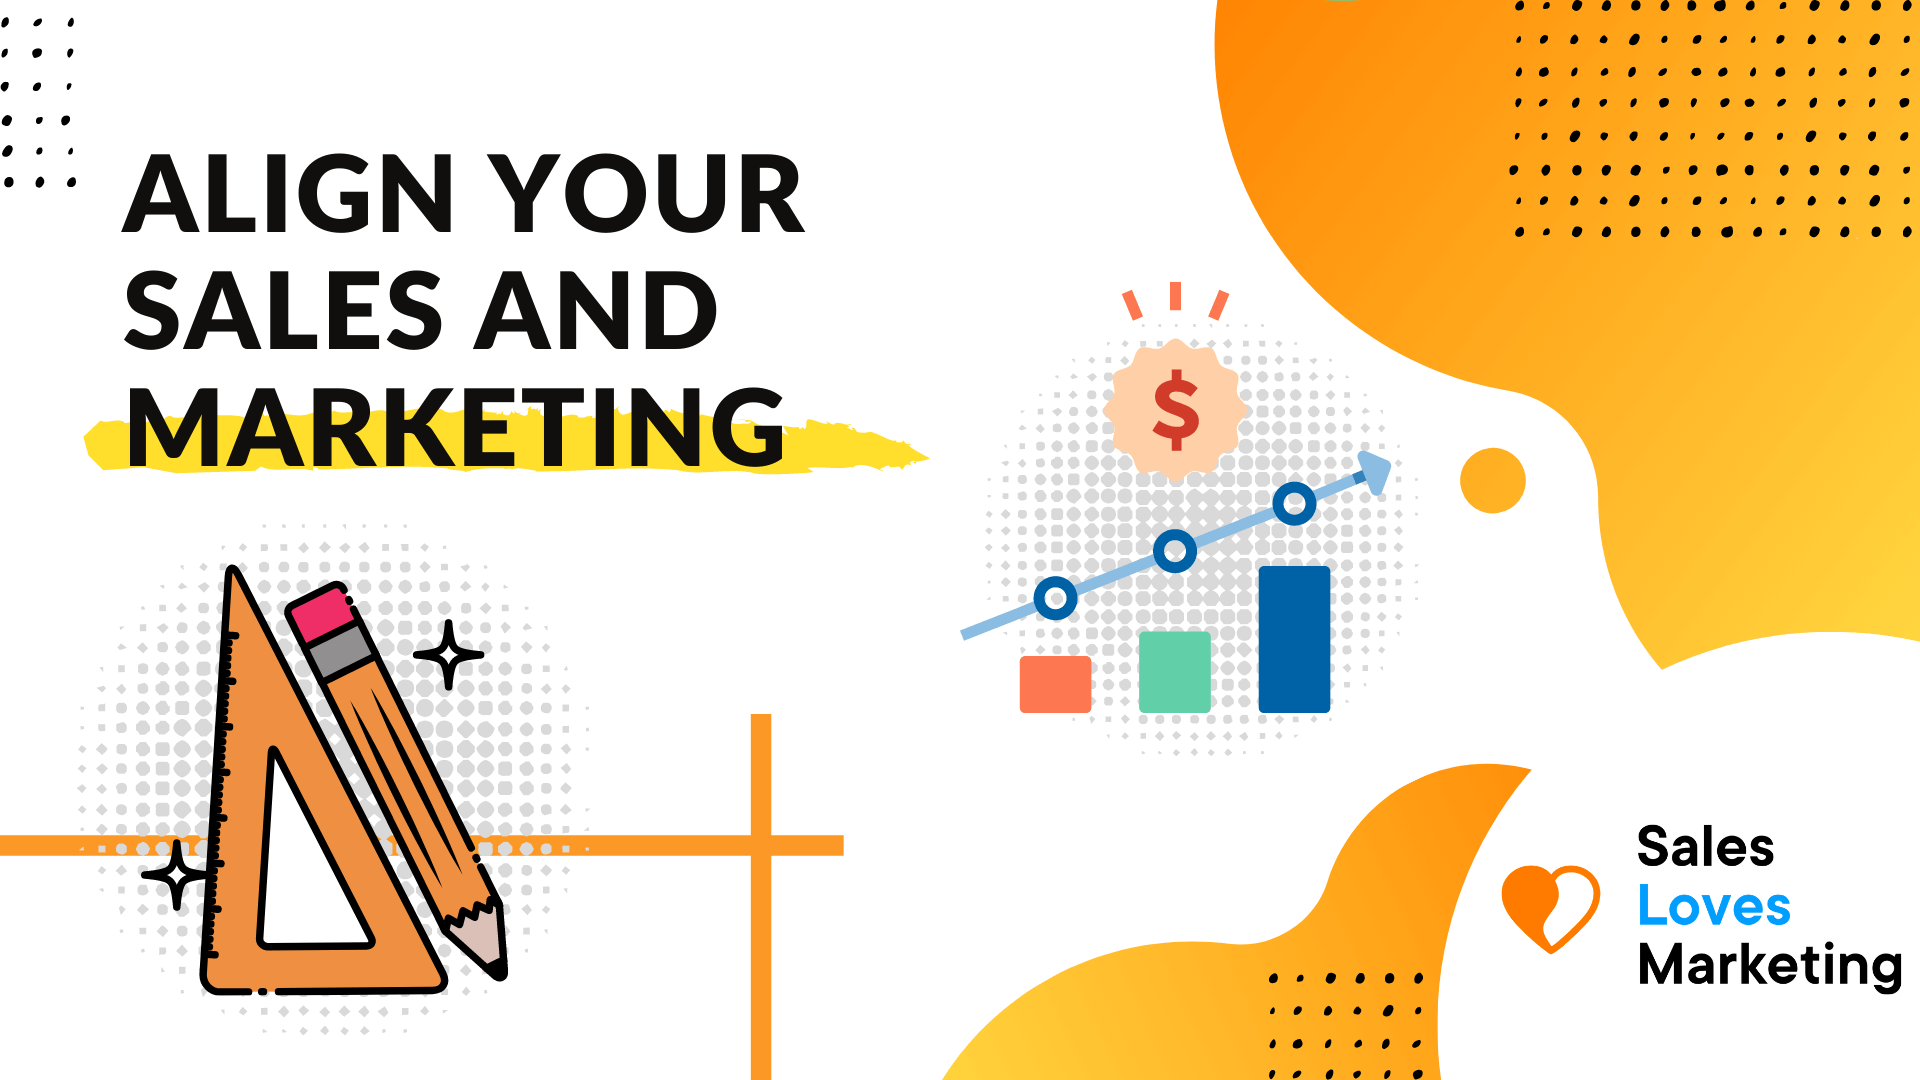 Aligning marketing and sales which bring the business huge benefits like generating more revenue